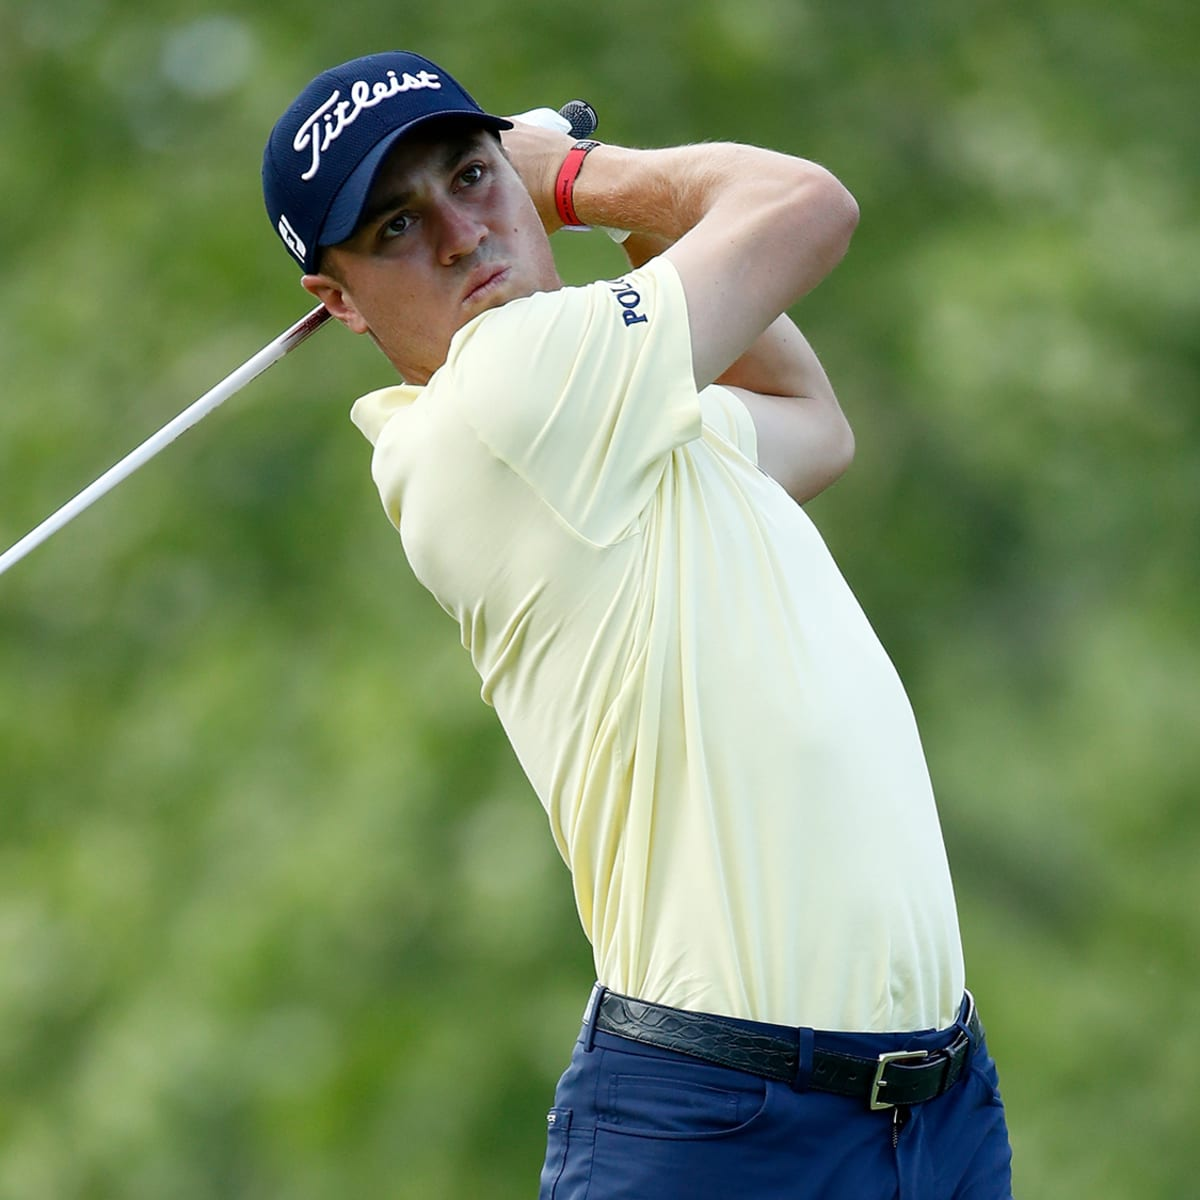 Justin Thomas The World No 1 Is Not Your Typical Sports Star Sports Illustrated